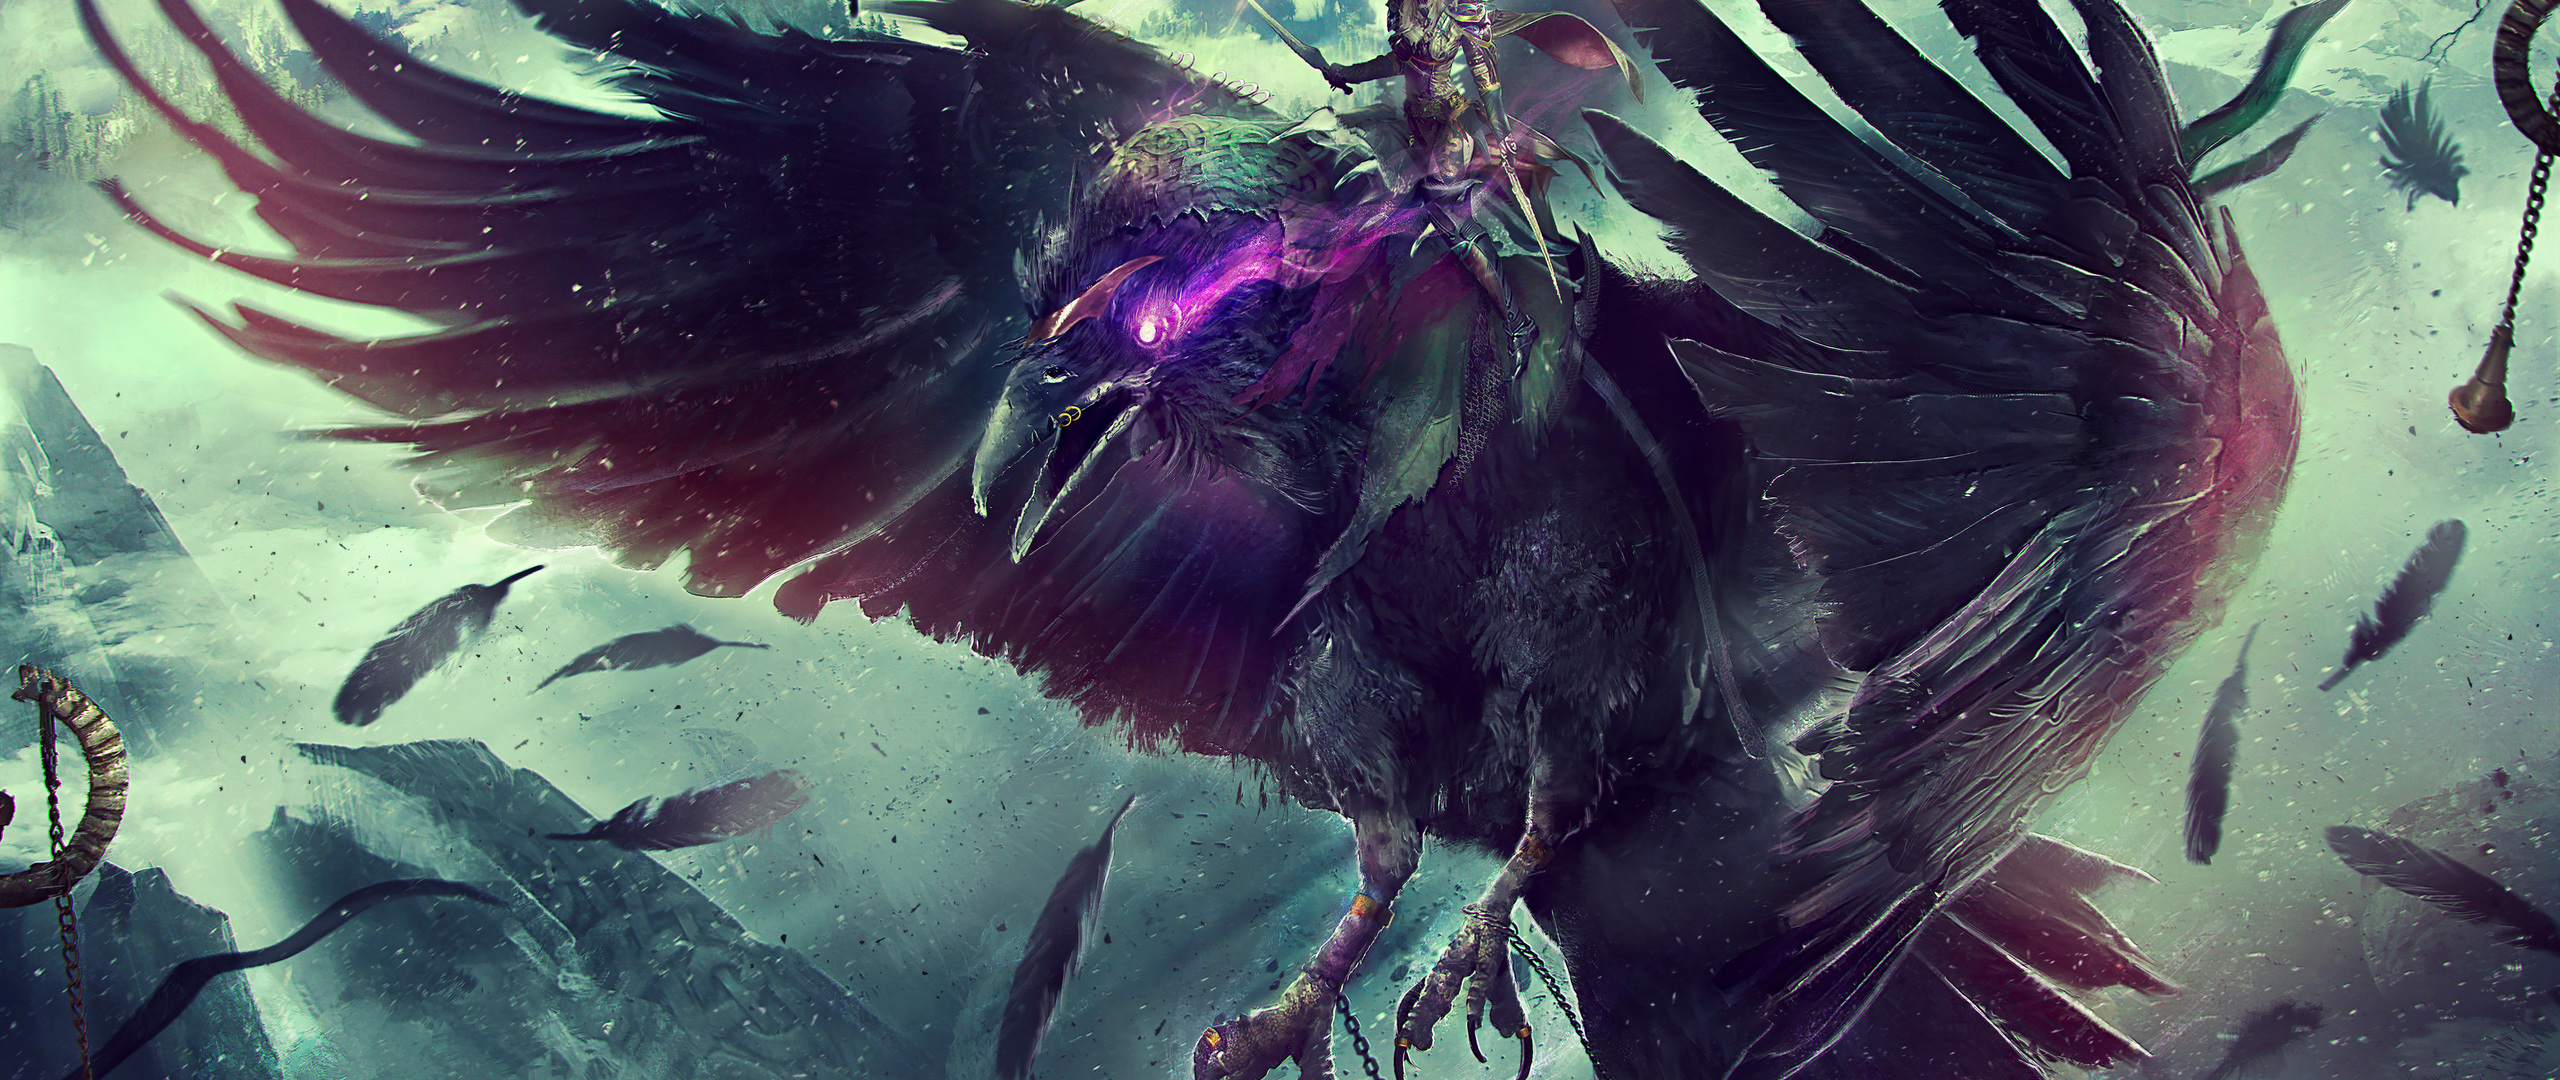 2560x1080 World Of Warcraft Raven Fantasy 4k 2560x1080 Resolution